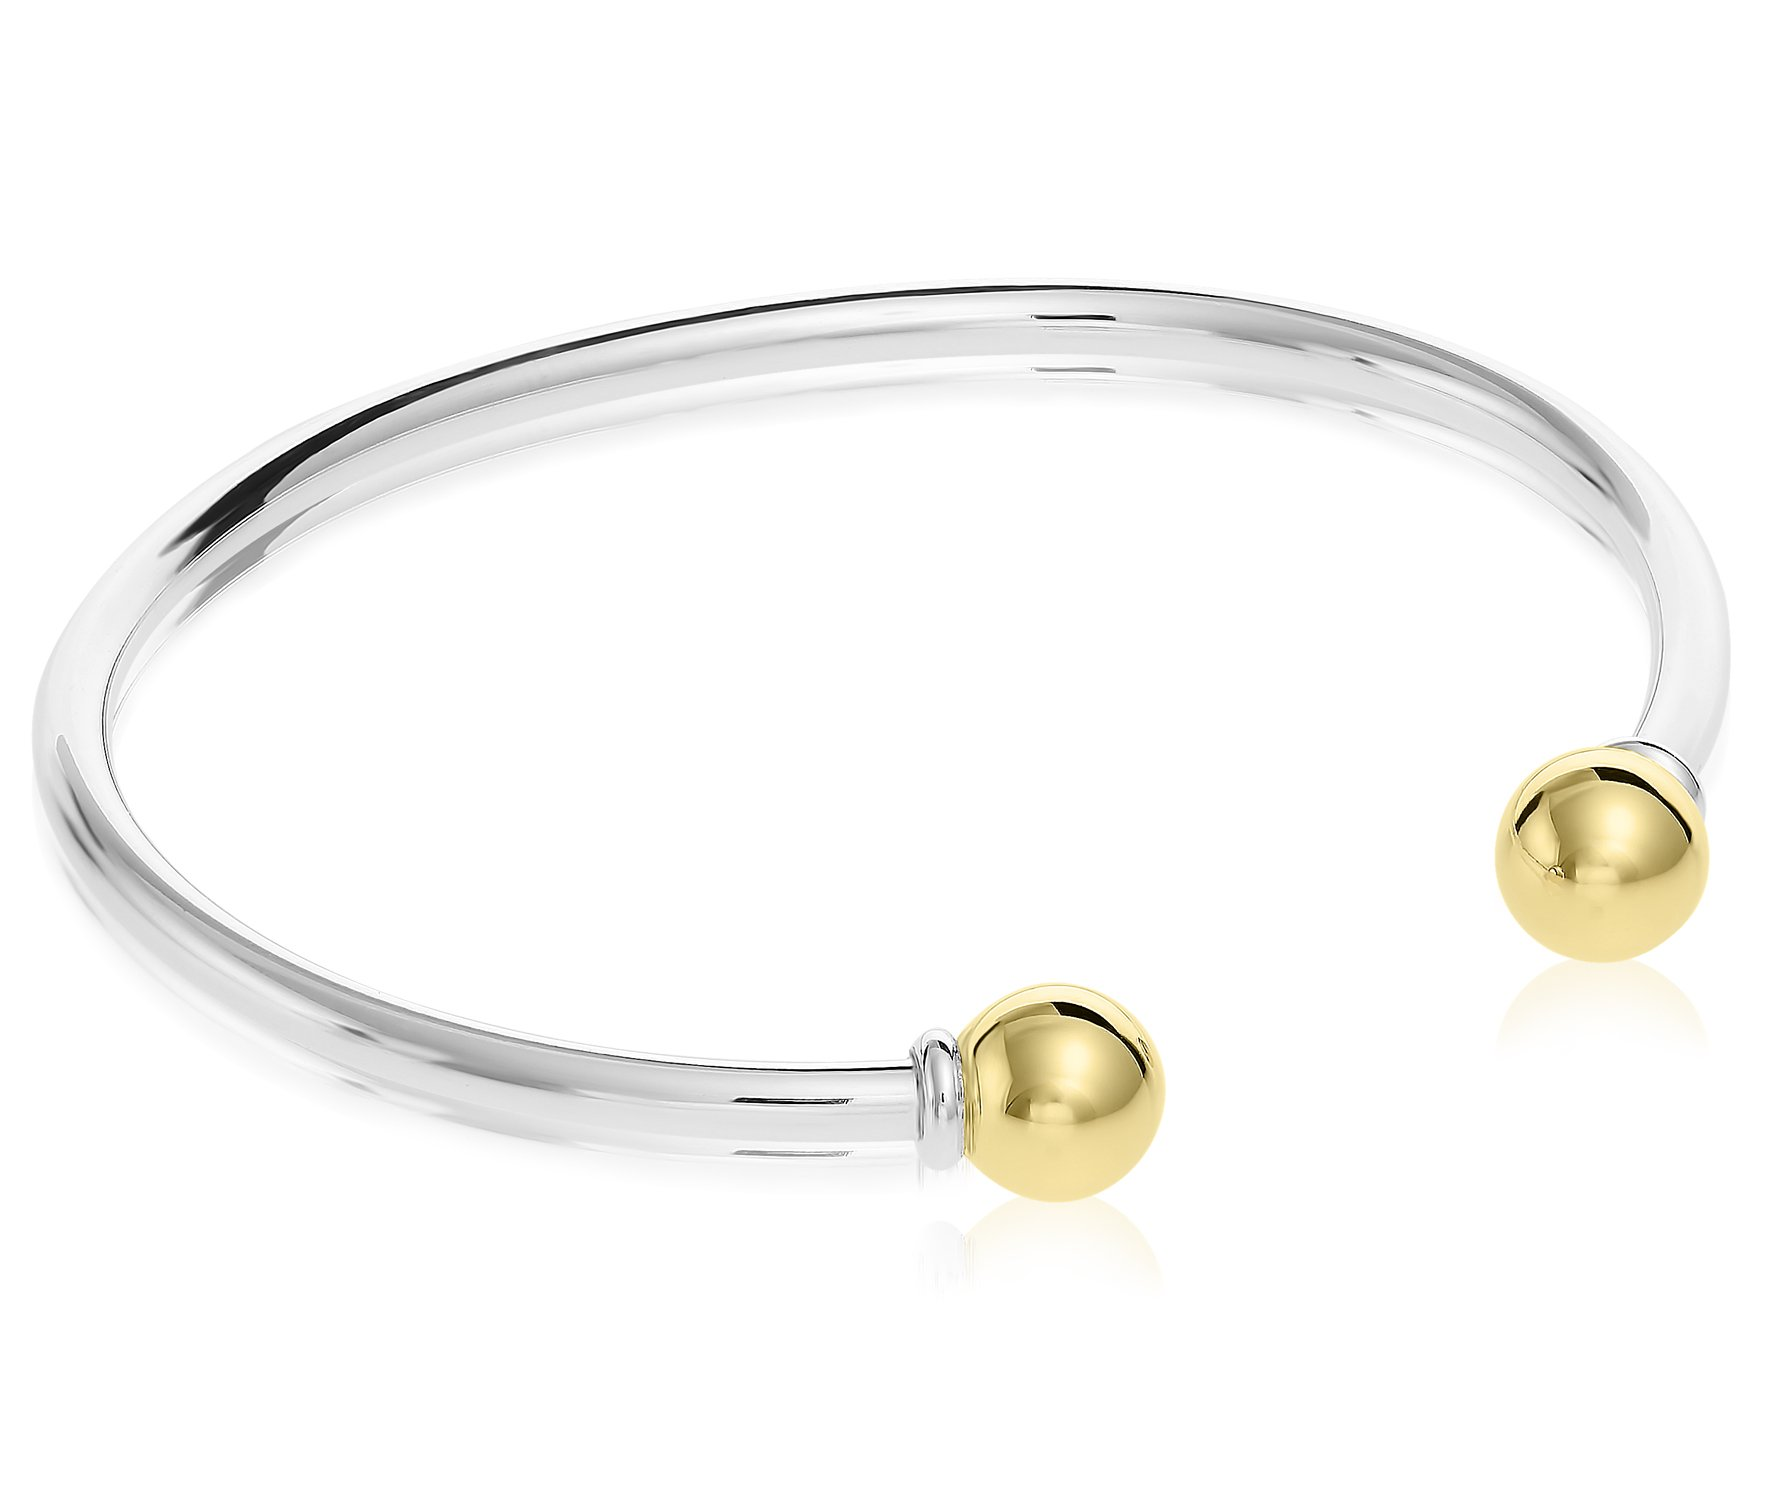 Unique royal jewelry Solid 925 Sterling Silver and 14k Gold 2-Ball Cuff Bracelet (Size 7) by Unique Royal Jewelry (Image #3)